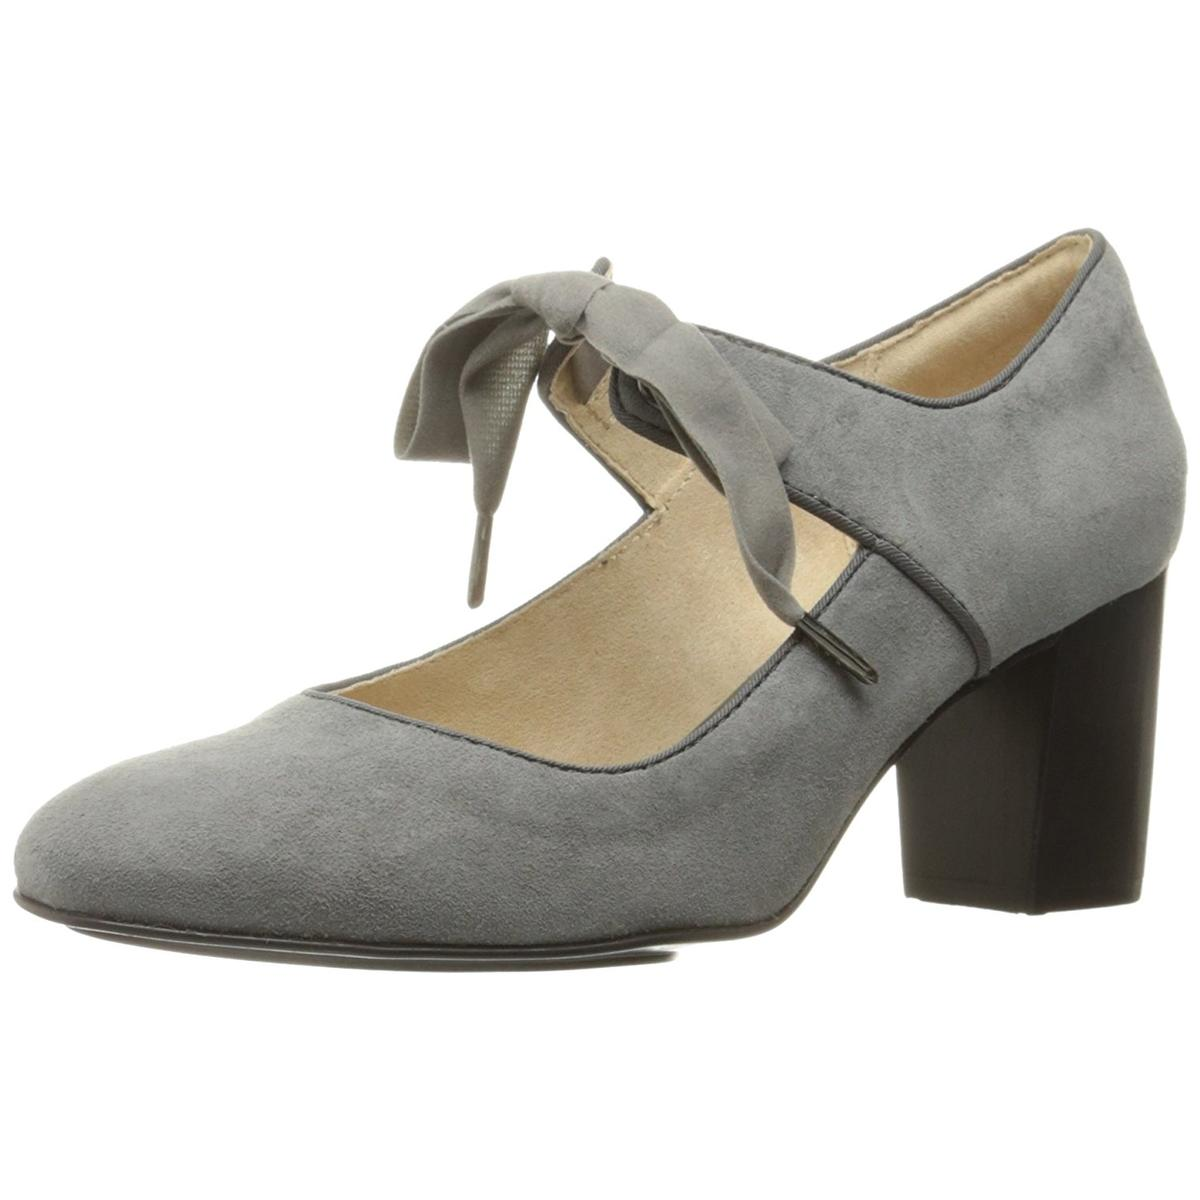 Hush Puppies Margot Langdon Womens Smoke Heels by Hush Puppies